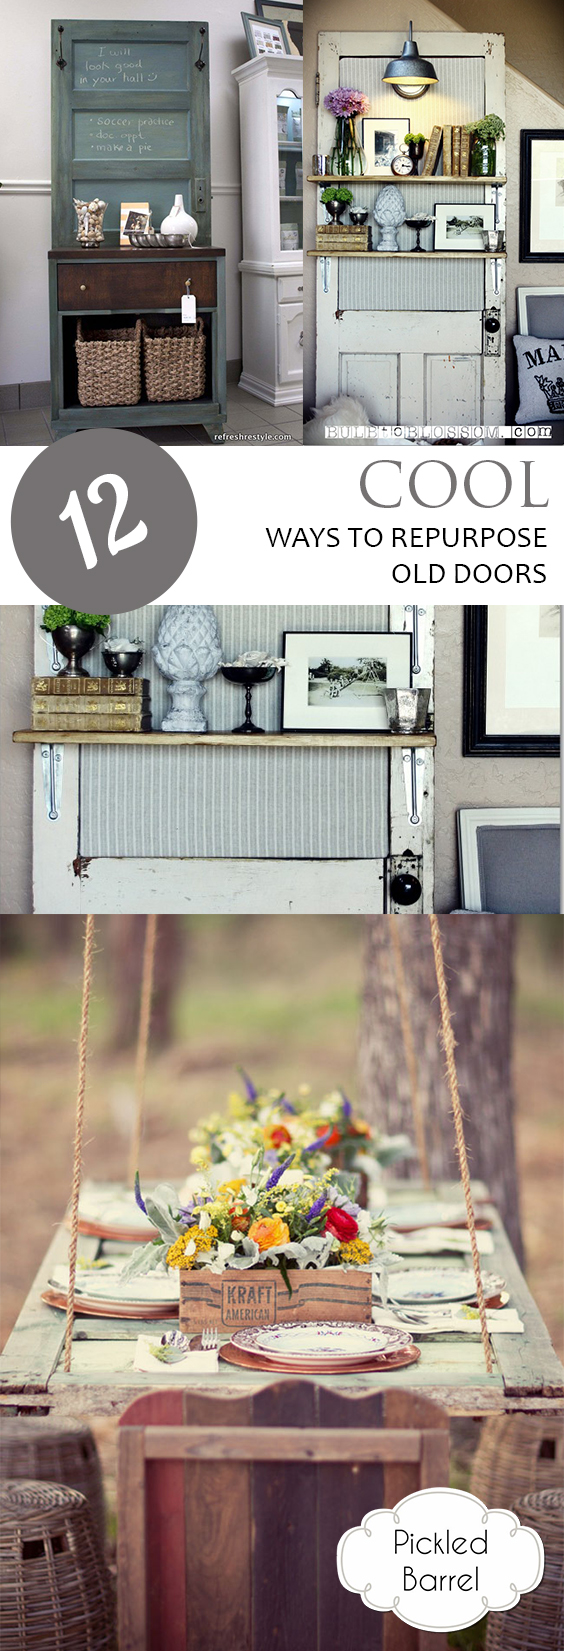 How to Reuse Old Doors, How to Repurpose Old Doors, Things to Do With Old Doors, Repurpose Projects, Easy Repurpose Projects, DIY Home Decor, DIY Home Decor Projects, Easy Projects for the Home, Popular Pin